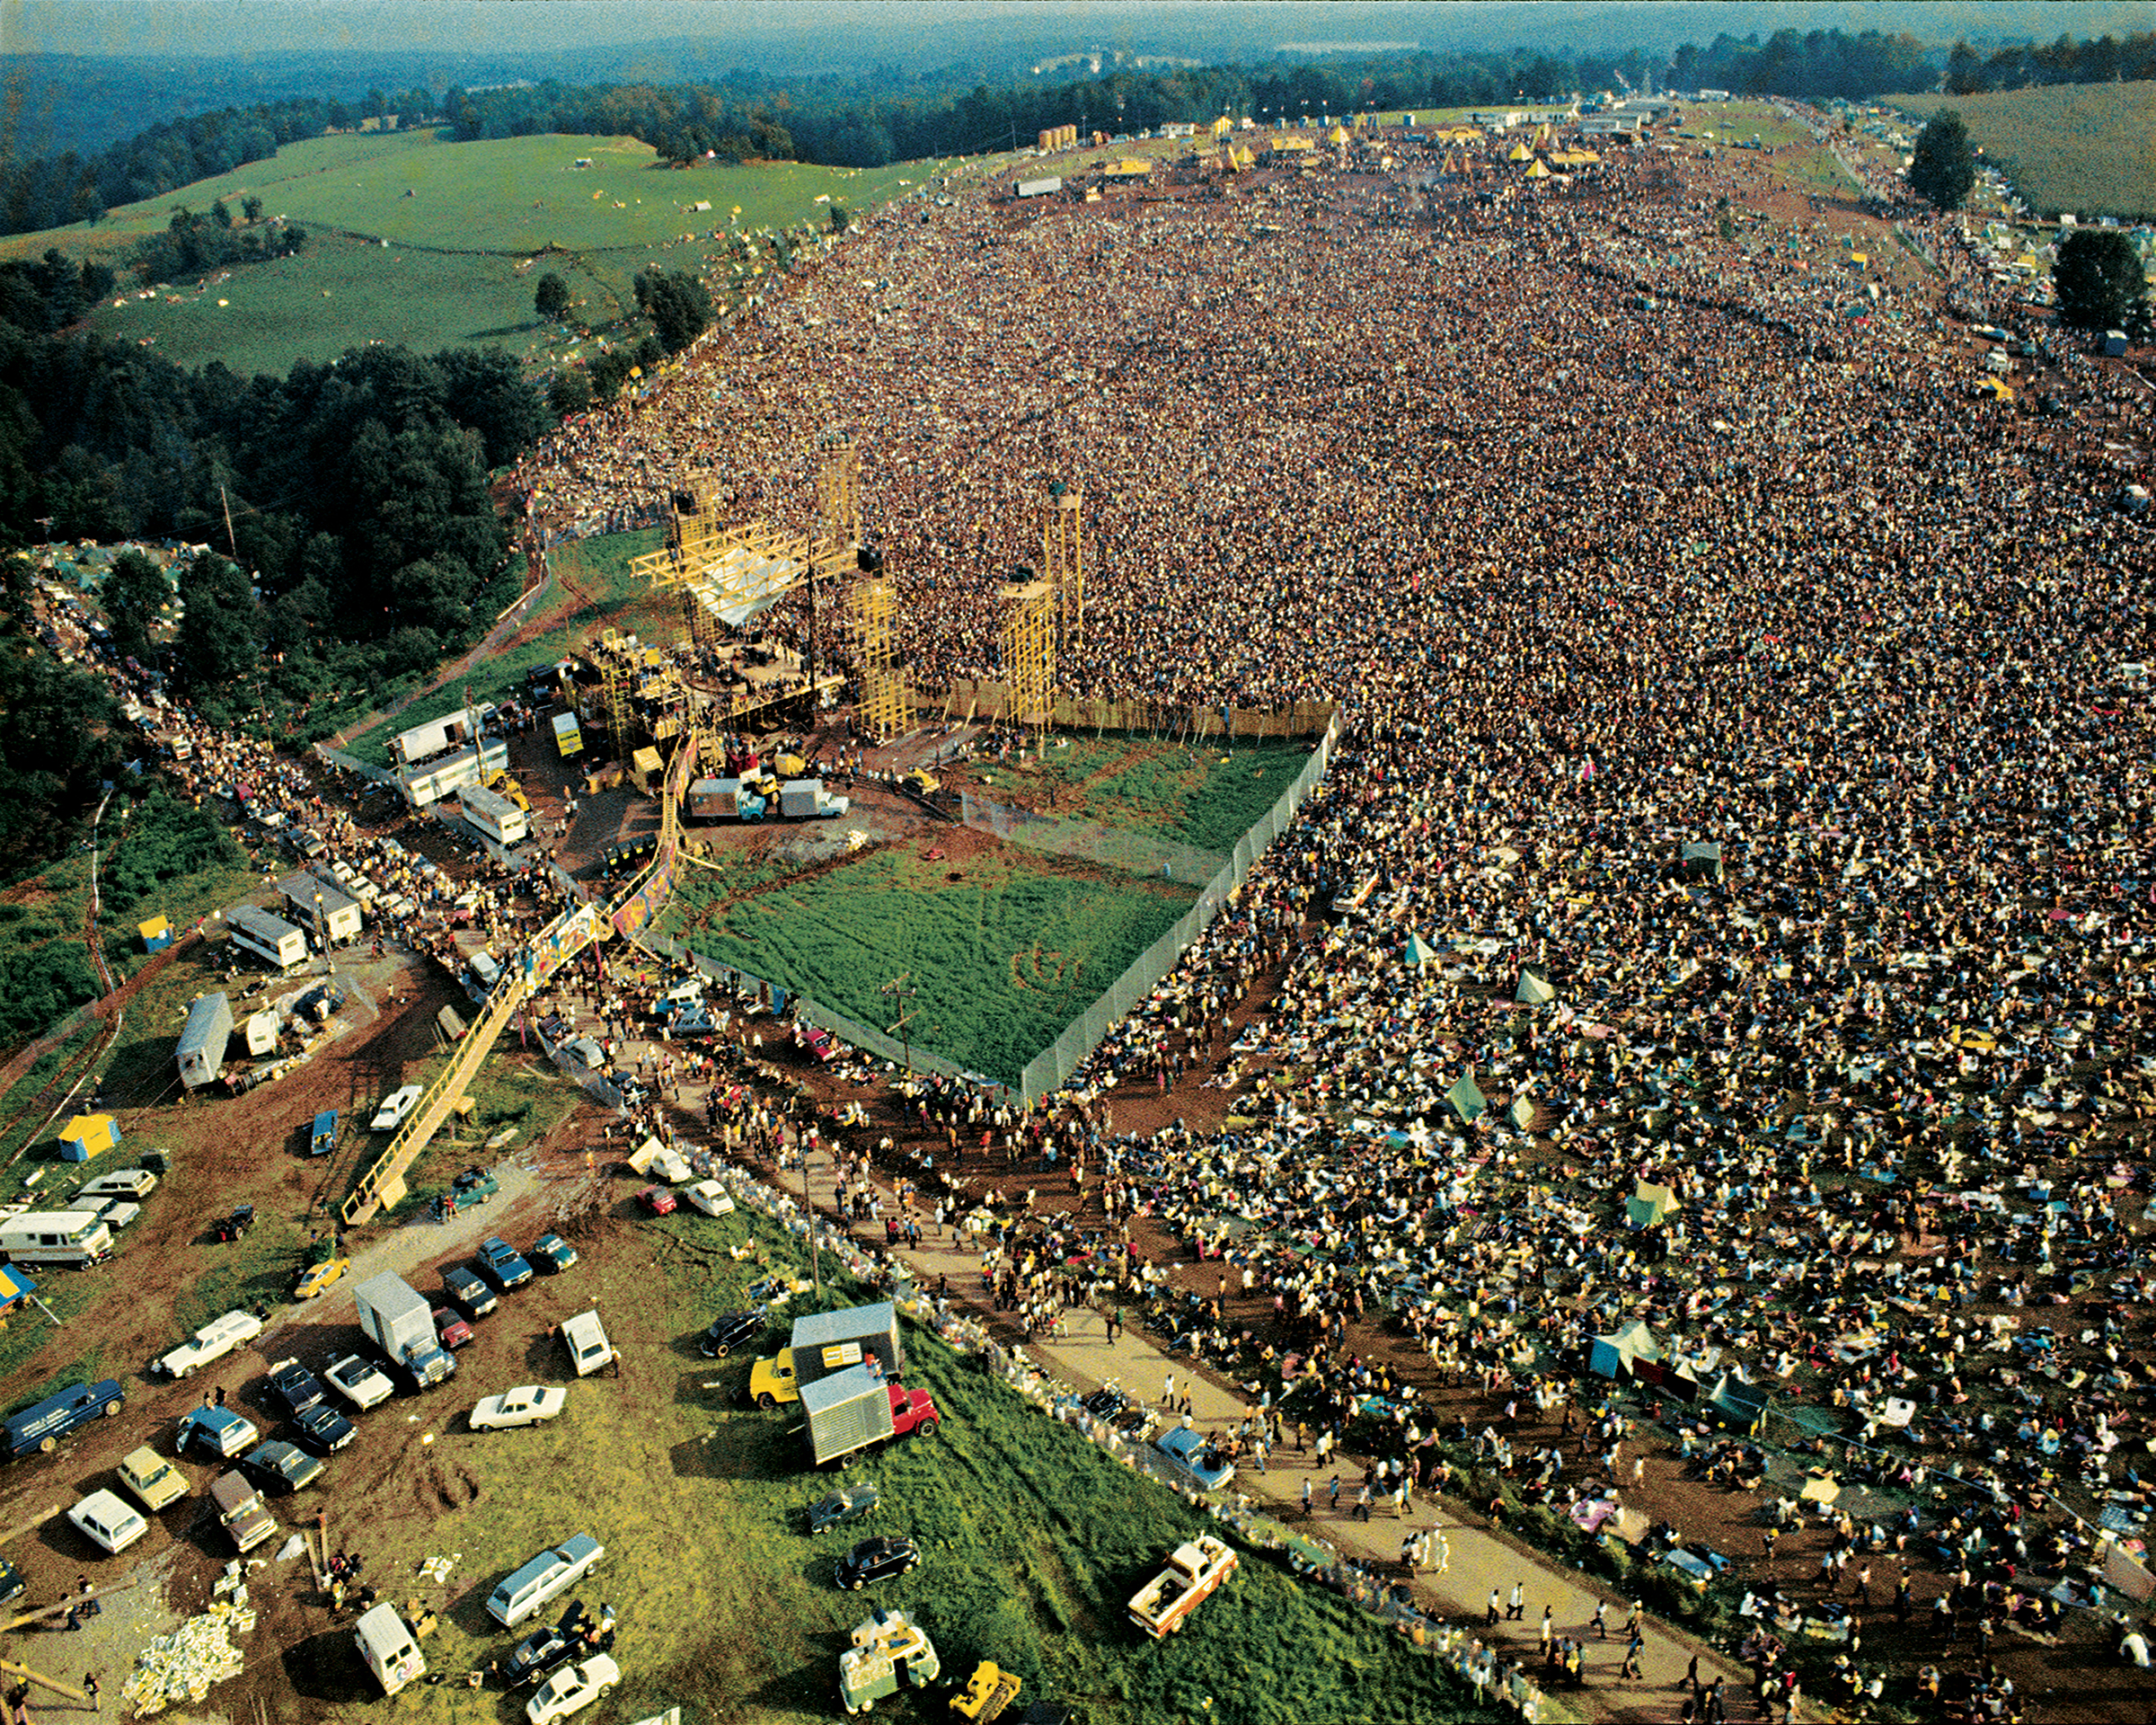 5 Woodstock Photographers On The Images That Moved Them Most